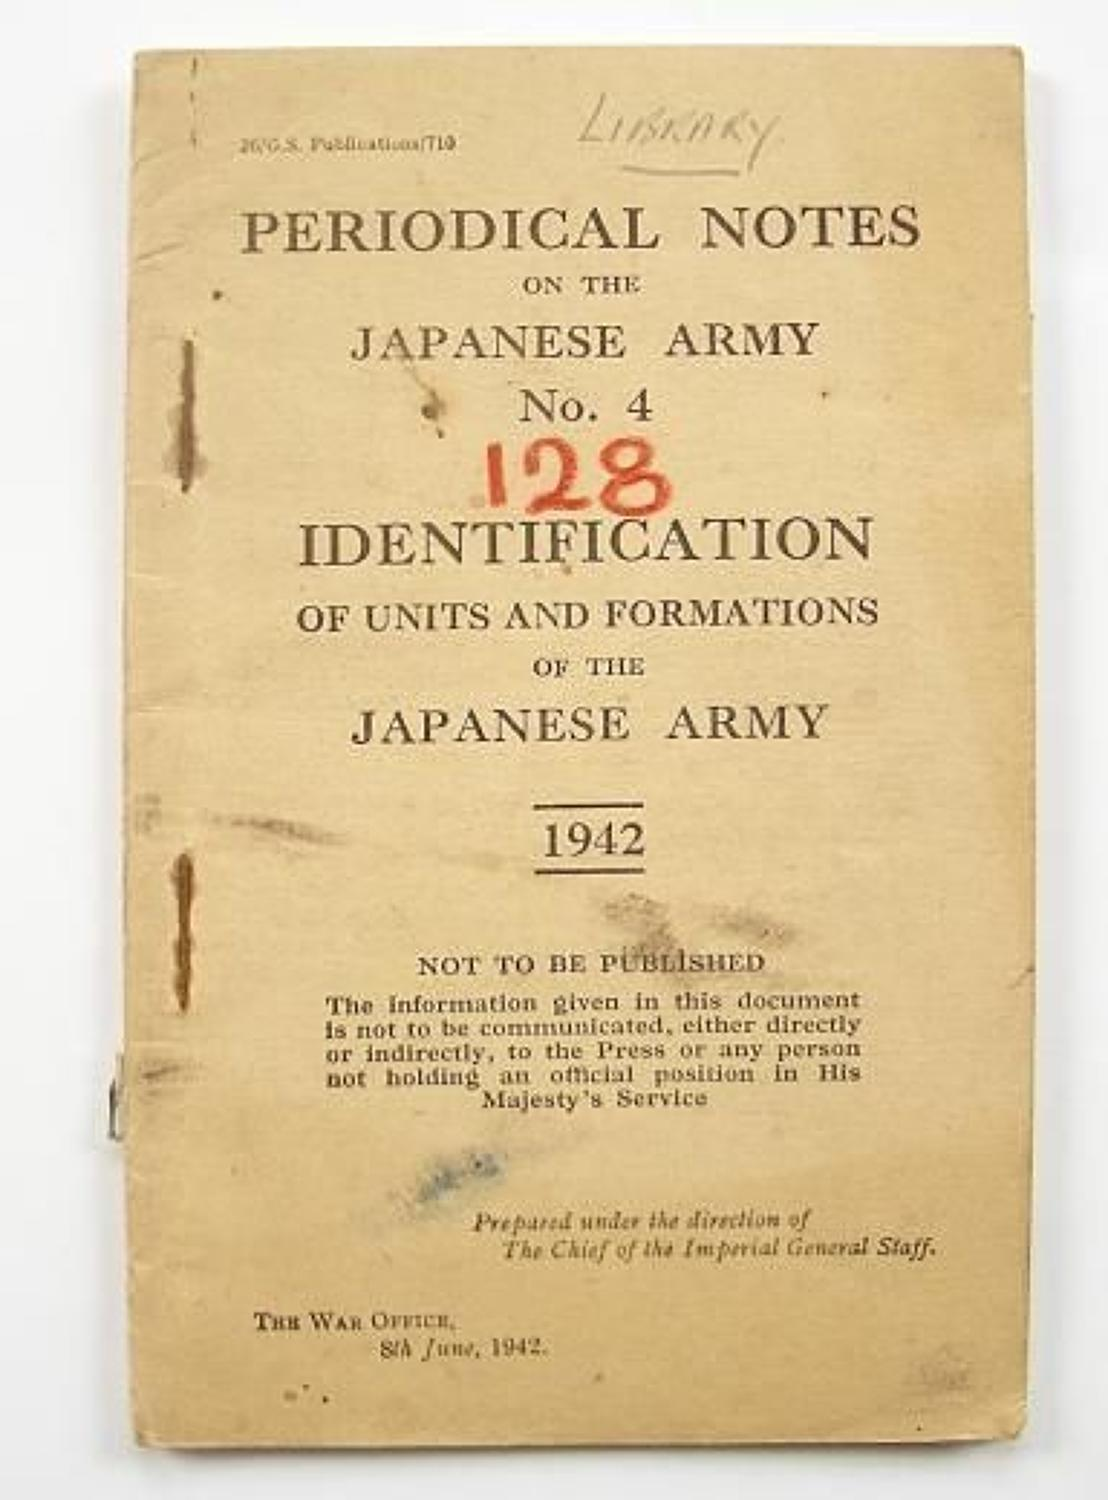 WW2 War Department Issue Identification of the Japanese Army 1942 Manu